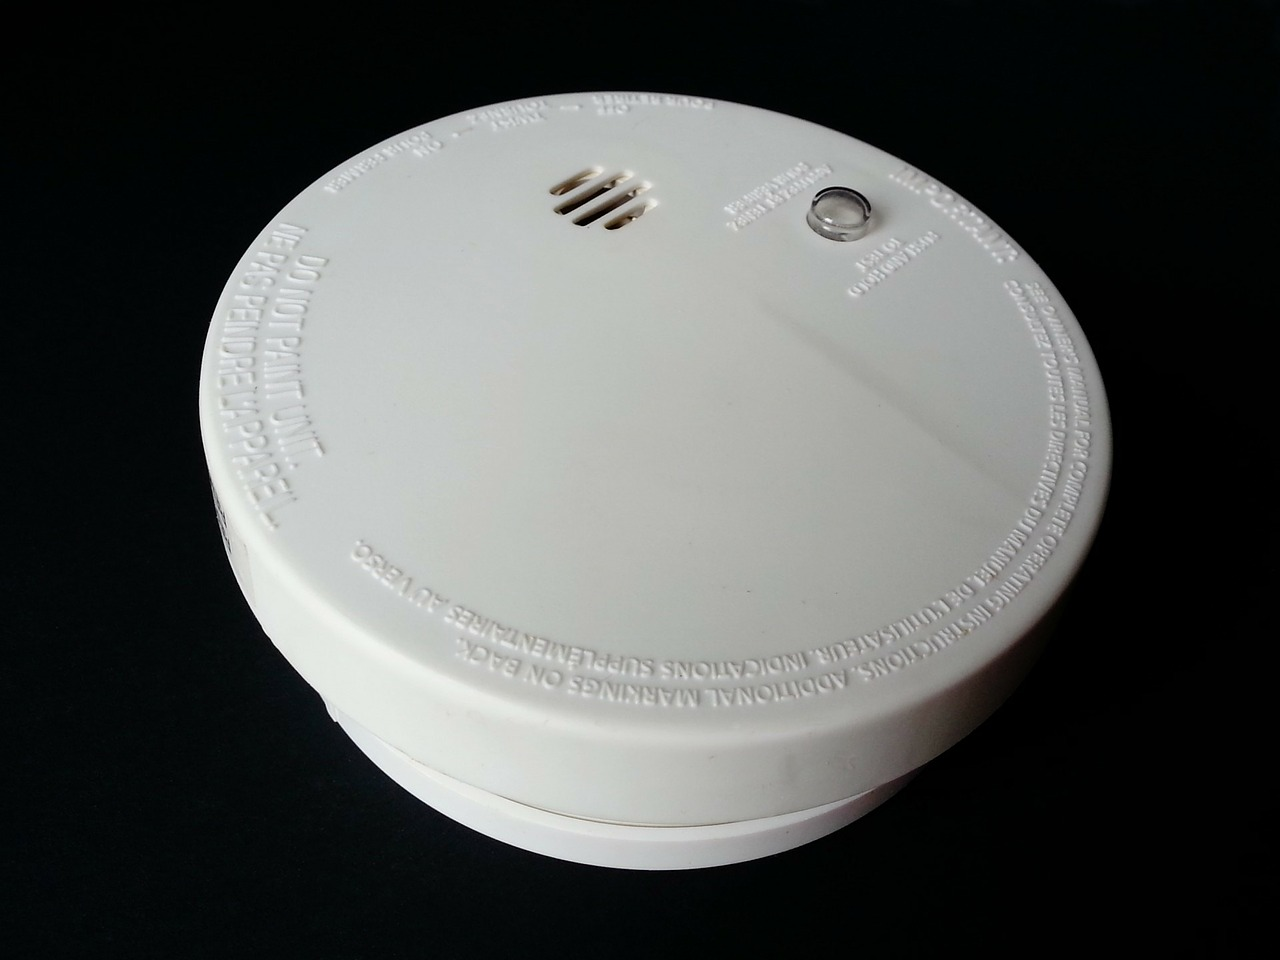 smoke detector fire alarm safety